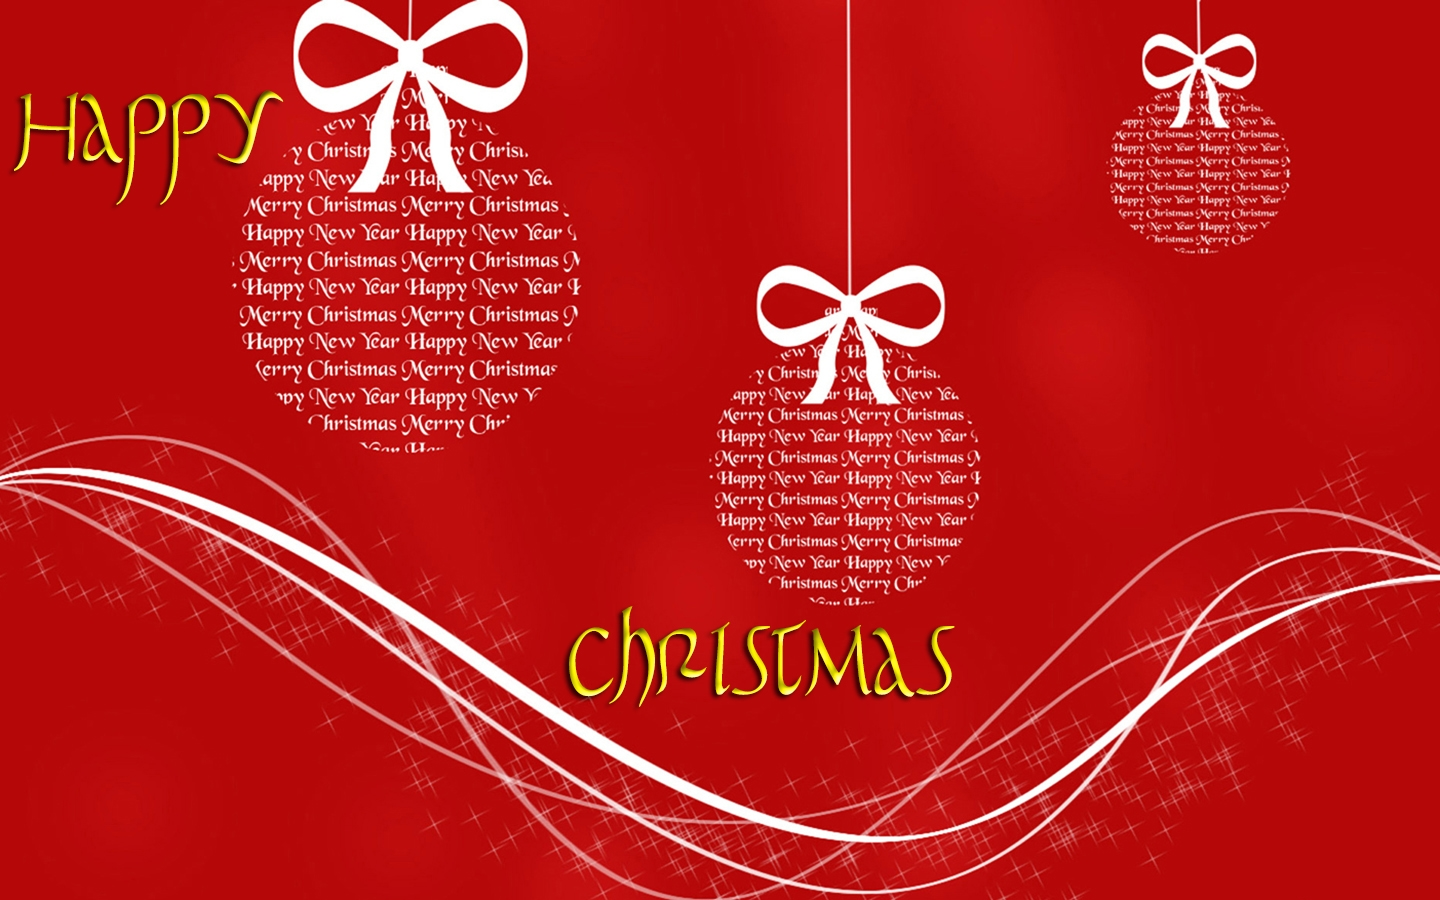 Christian Christmas Photo Greetings Cards Free Christmas Greeting 003